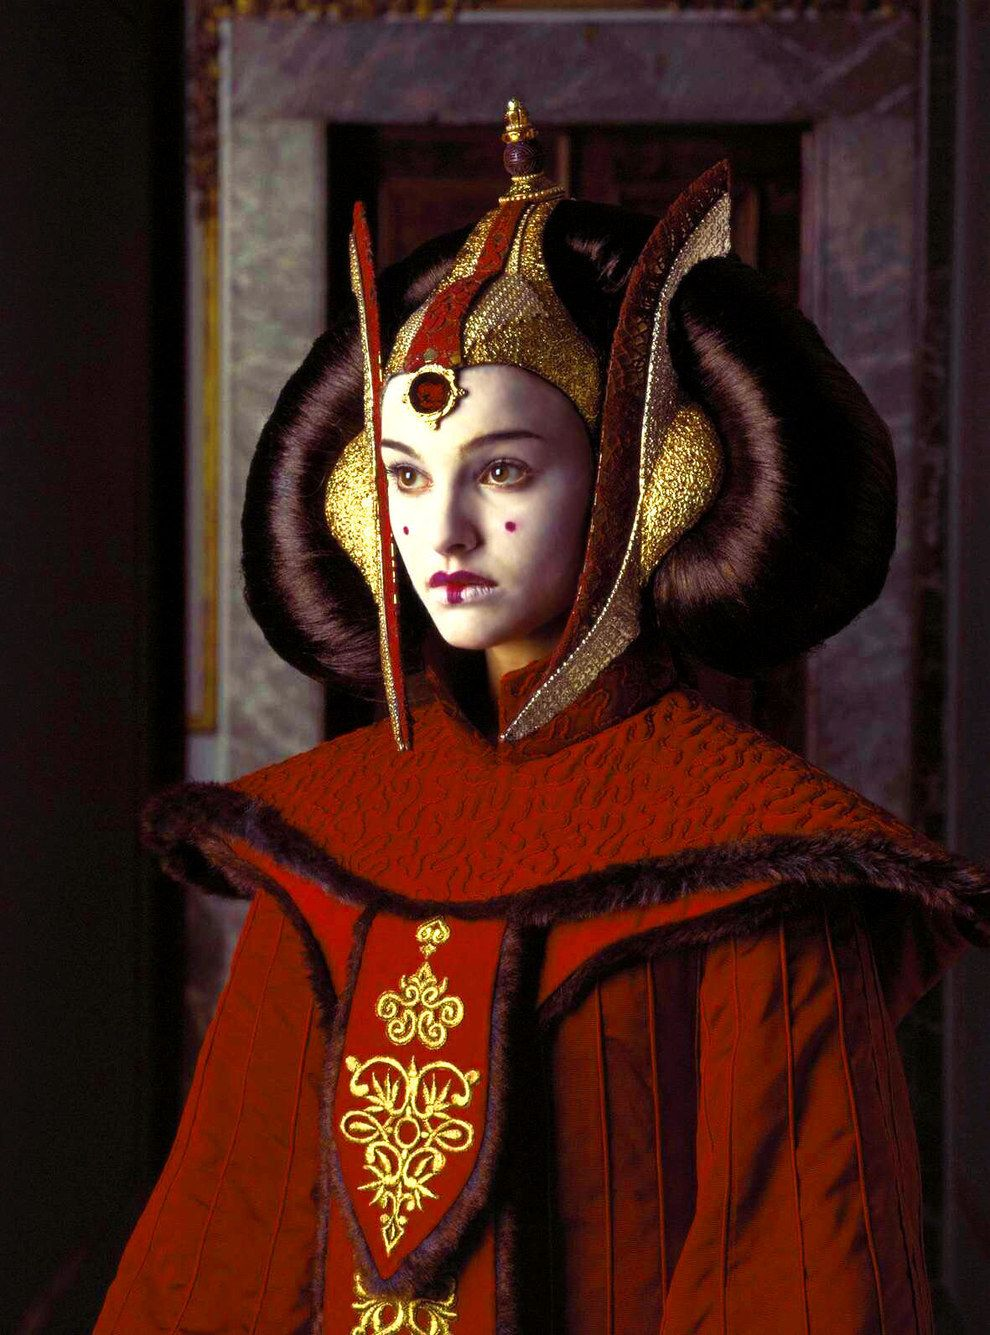 Naboo royalty is known for their striking makeup.